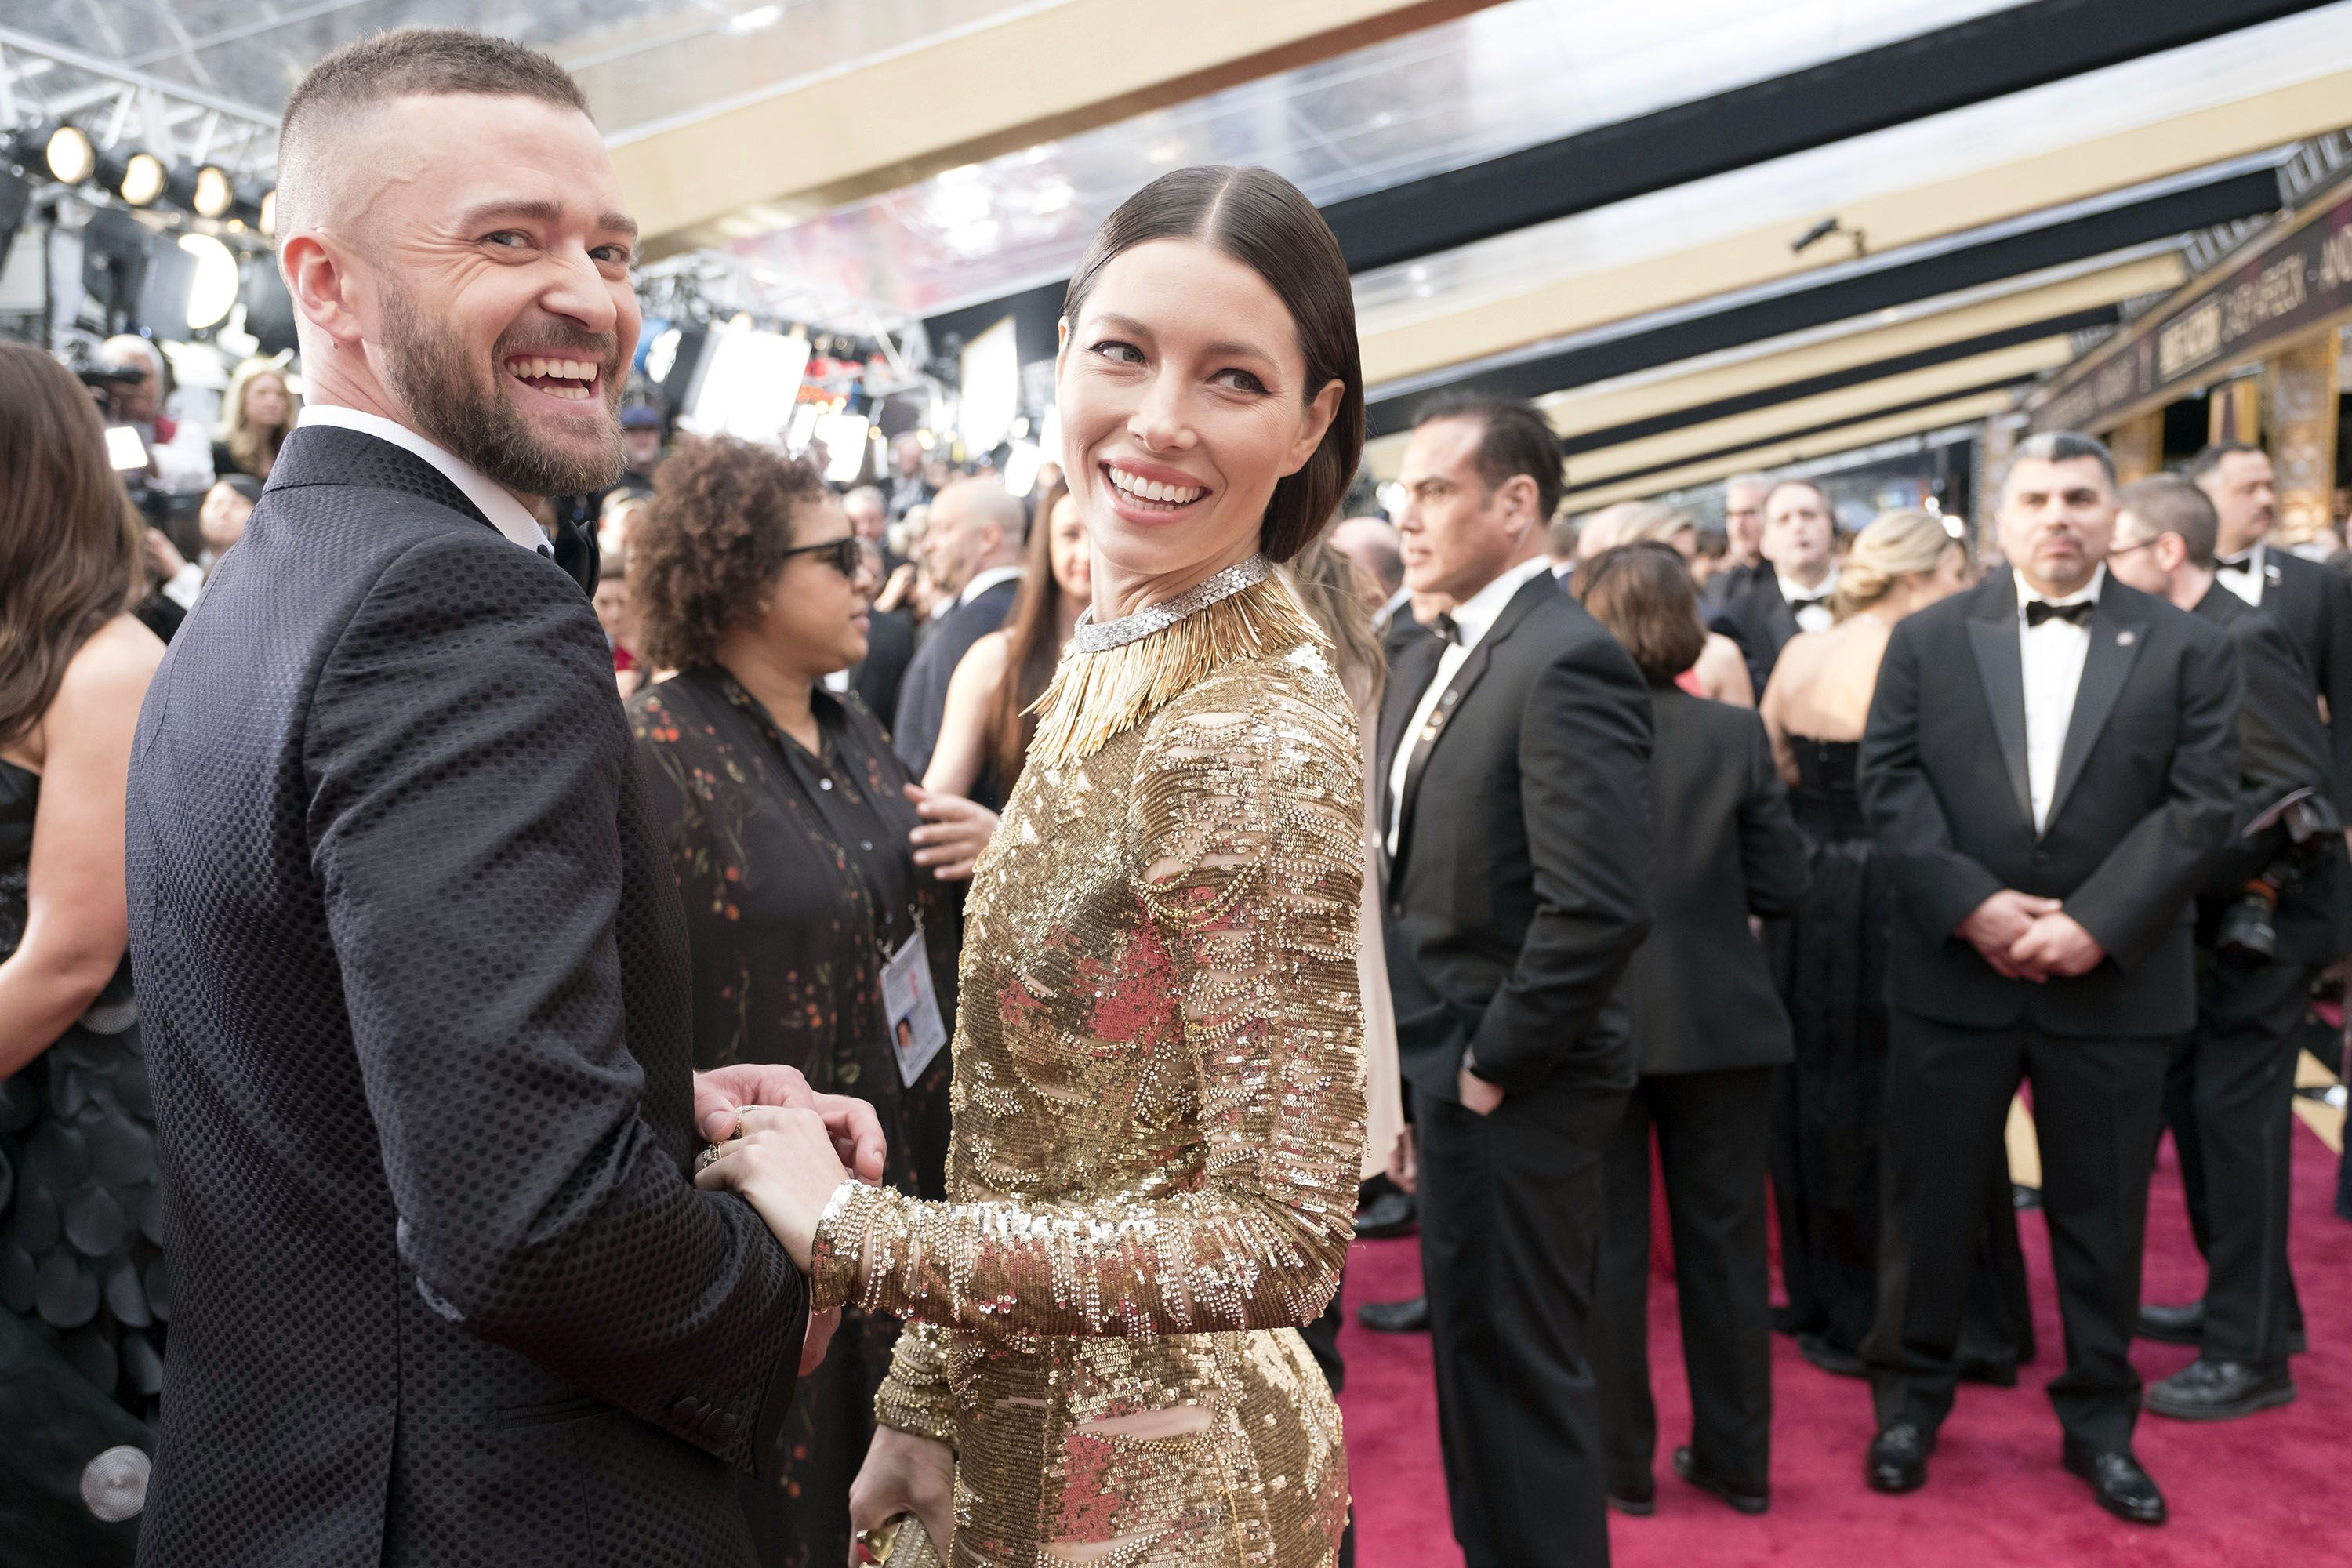 Justin Timberlake and Jessica Biel Gush About Each Other in Valentine's Day Instagram Posts